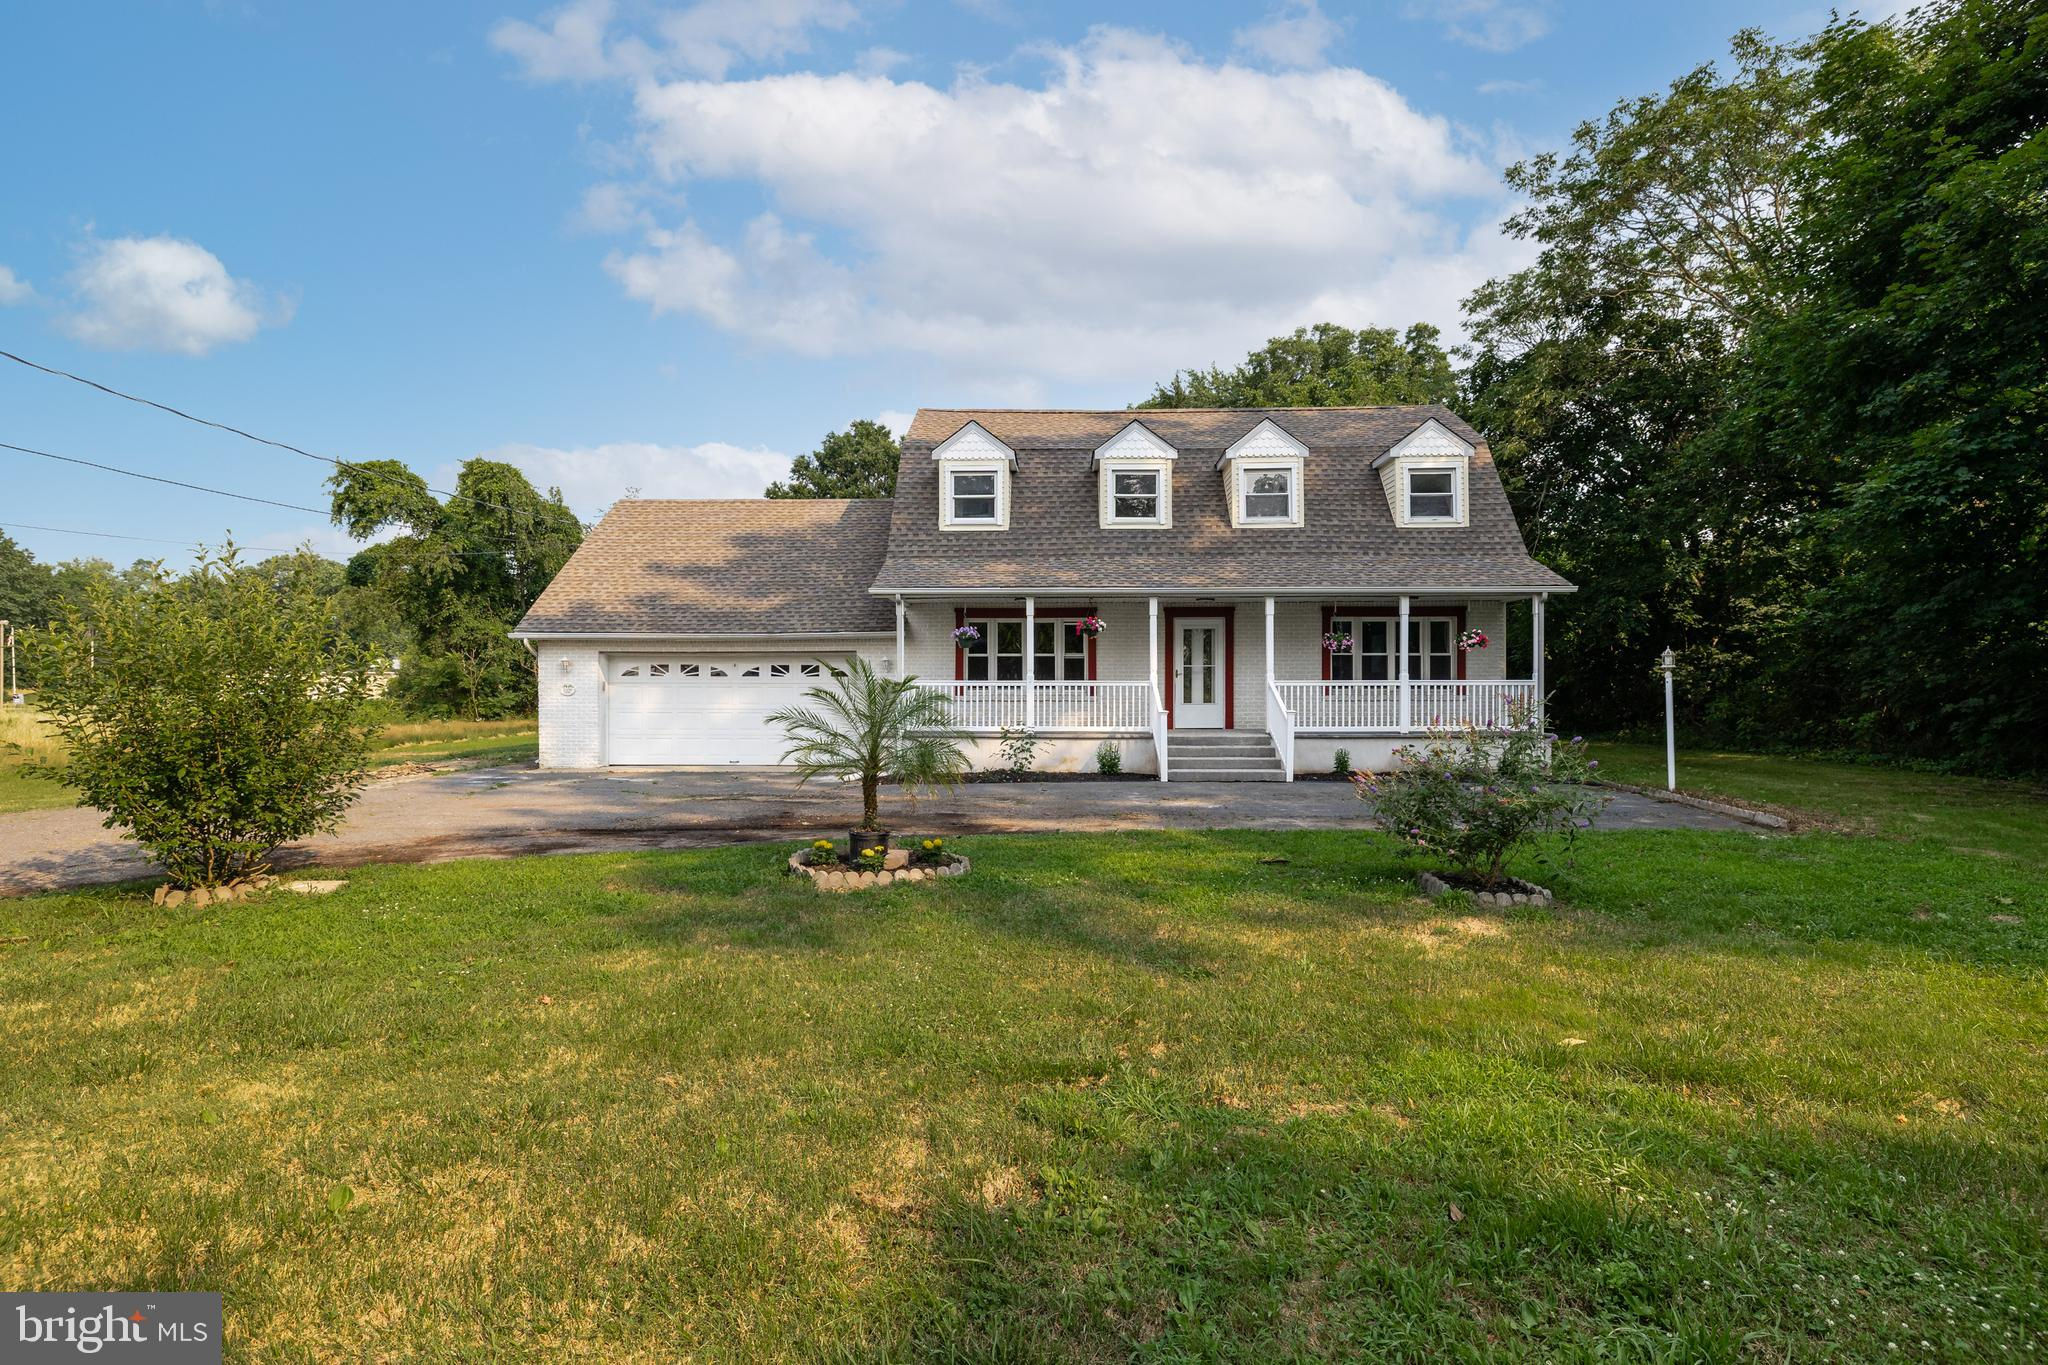 2480 Monmouth Road, Jobstown, NJ 08041 has an Open House on  Sunday, October 17, 2021 1:00 PM to 3:00 PM